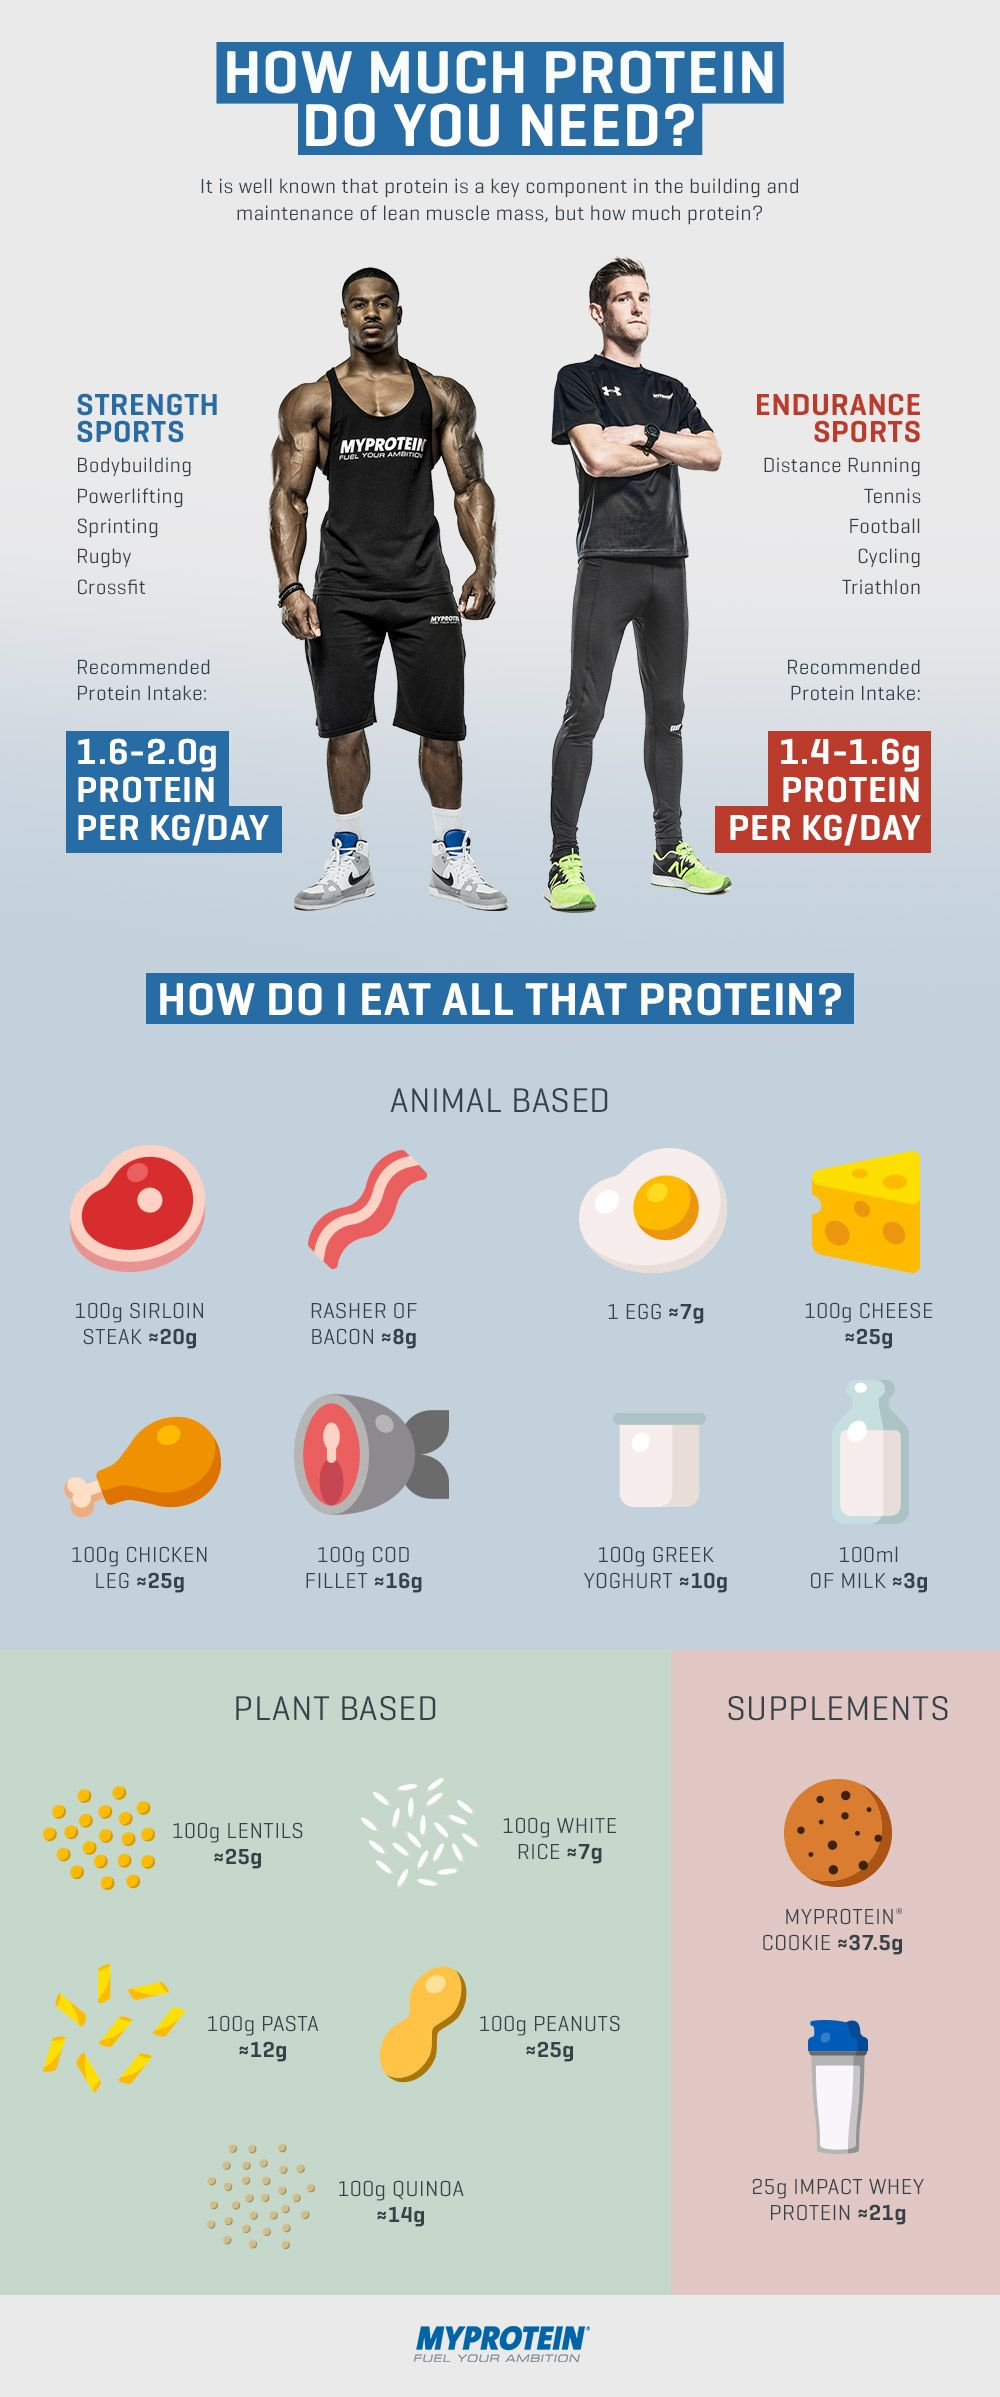 How Many Protein Shakes A Day Is Healthy Myprotein Workout Food Bodybuilding Diet Fitness Diet